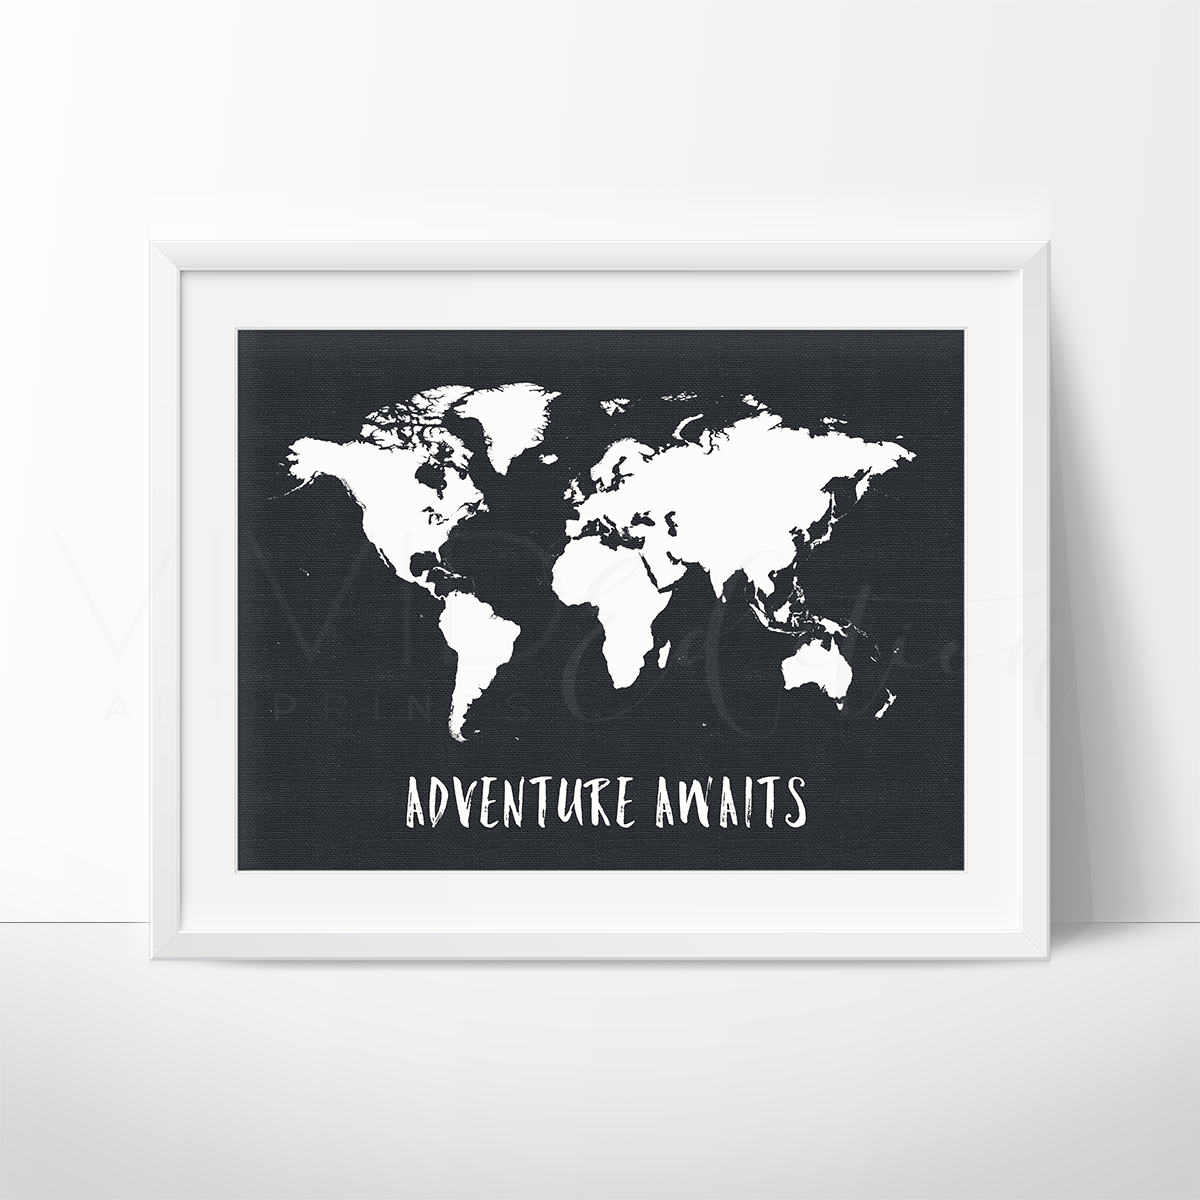 Adventure awaits world map nursery art wall decor print vivideditions adventure awaits world map black white art print vivideditions gumiabroncs Images